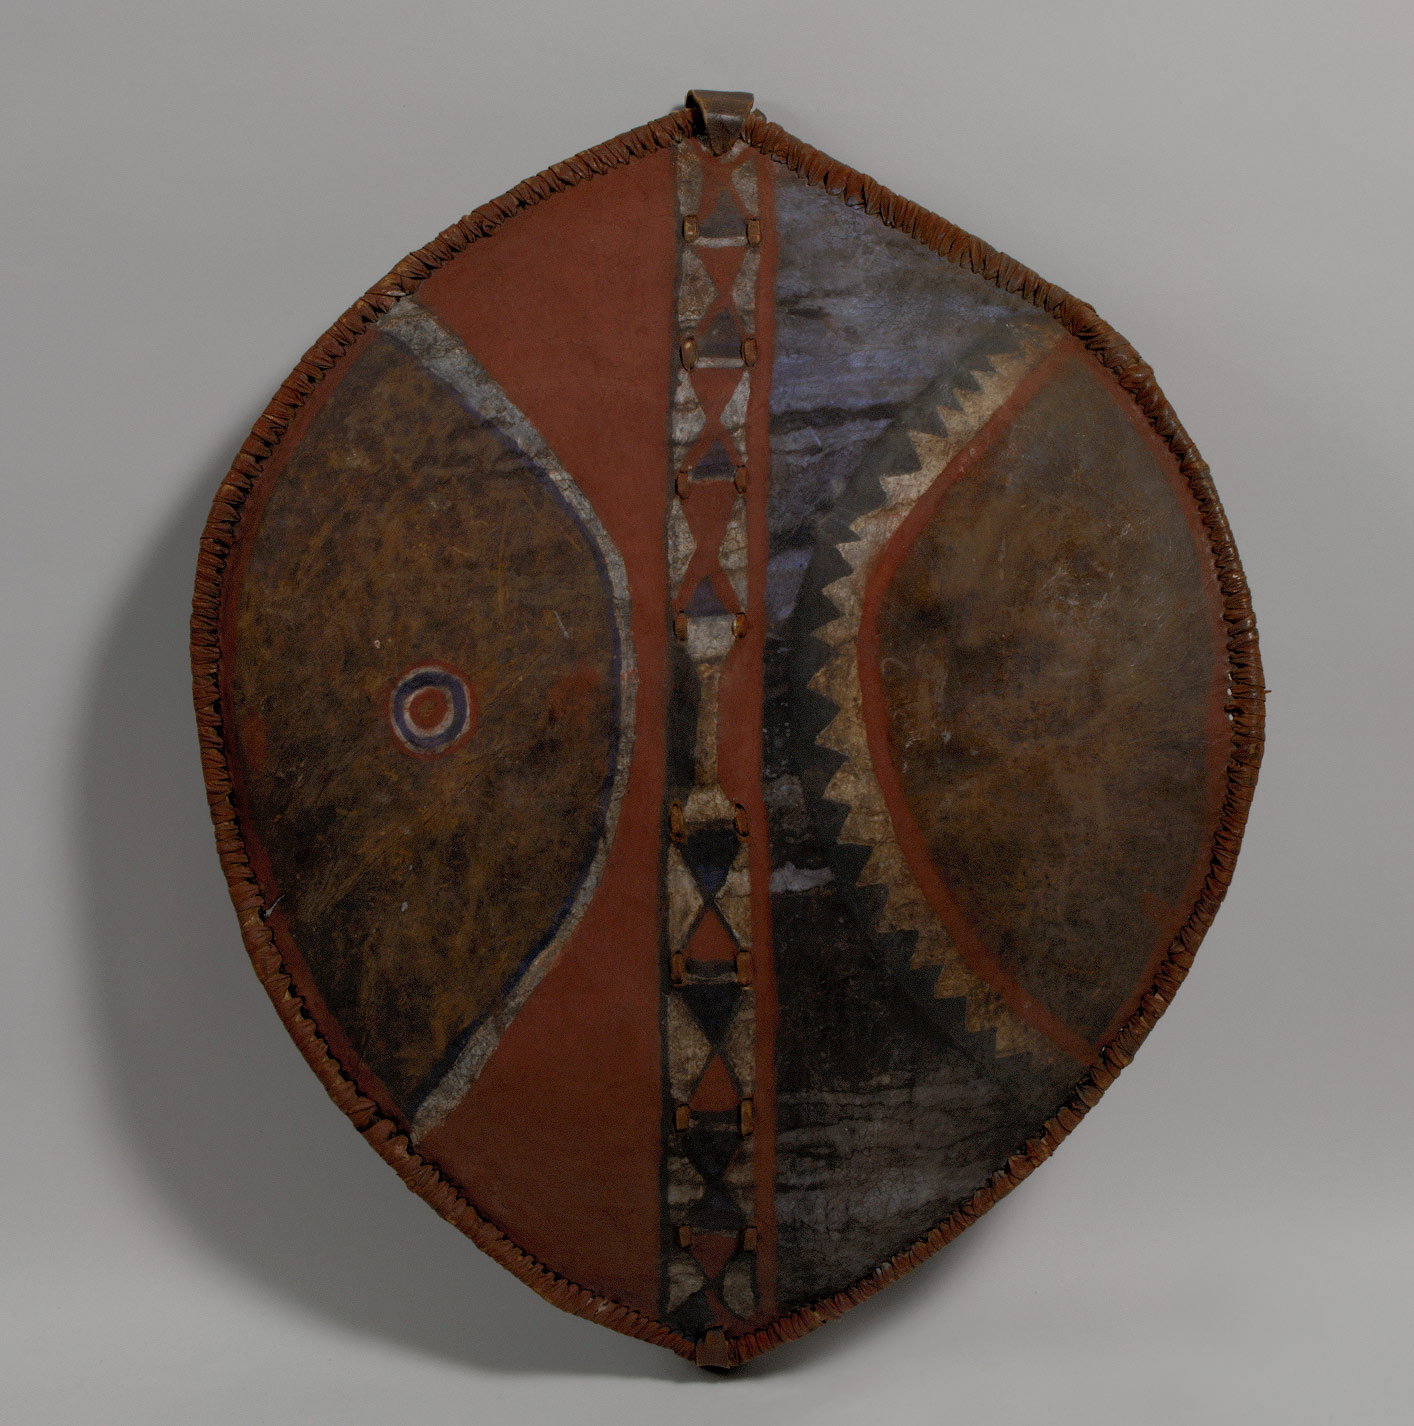 Shield work of art heilbrunn timeline of art history the shield buycottarizona Image collections